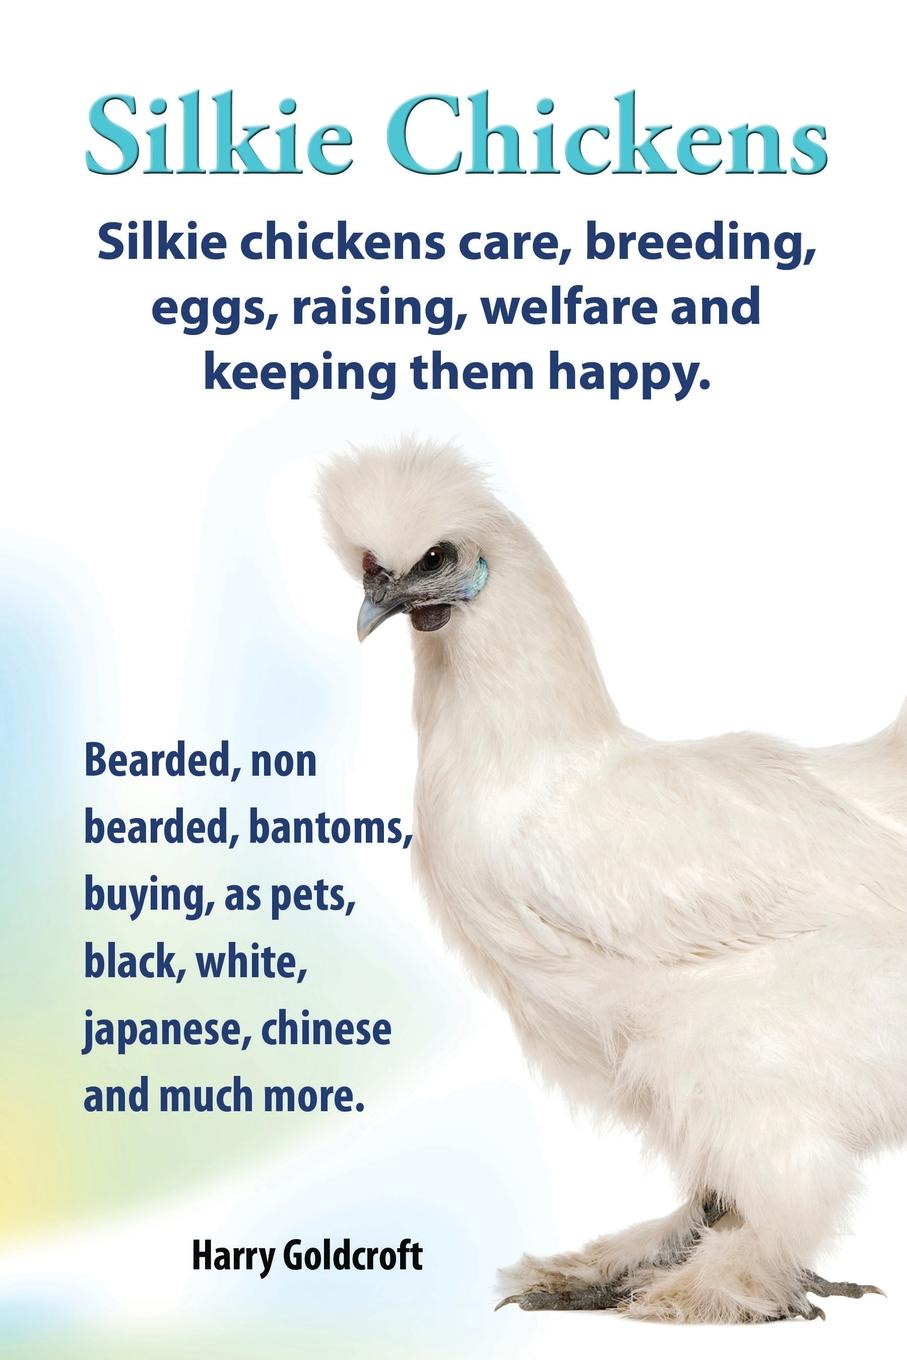 Harry Goldcroft . Silkie Chickens. Silkie Chickens Care, Breeding, Eggs, Raising, Welfare and Keeping Them Happy, Bearded, Non Bearded, Bantoms, Buying, as Pets, Blac pammy riggs keeping chickens for dummies